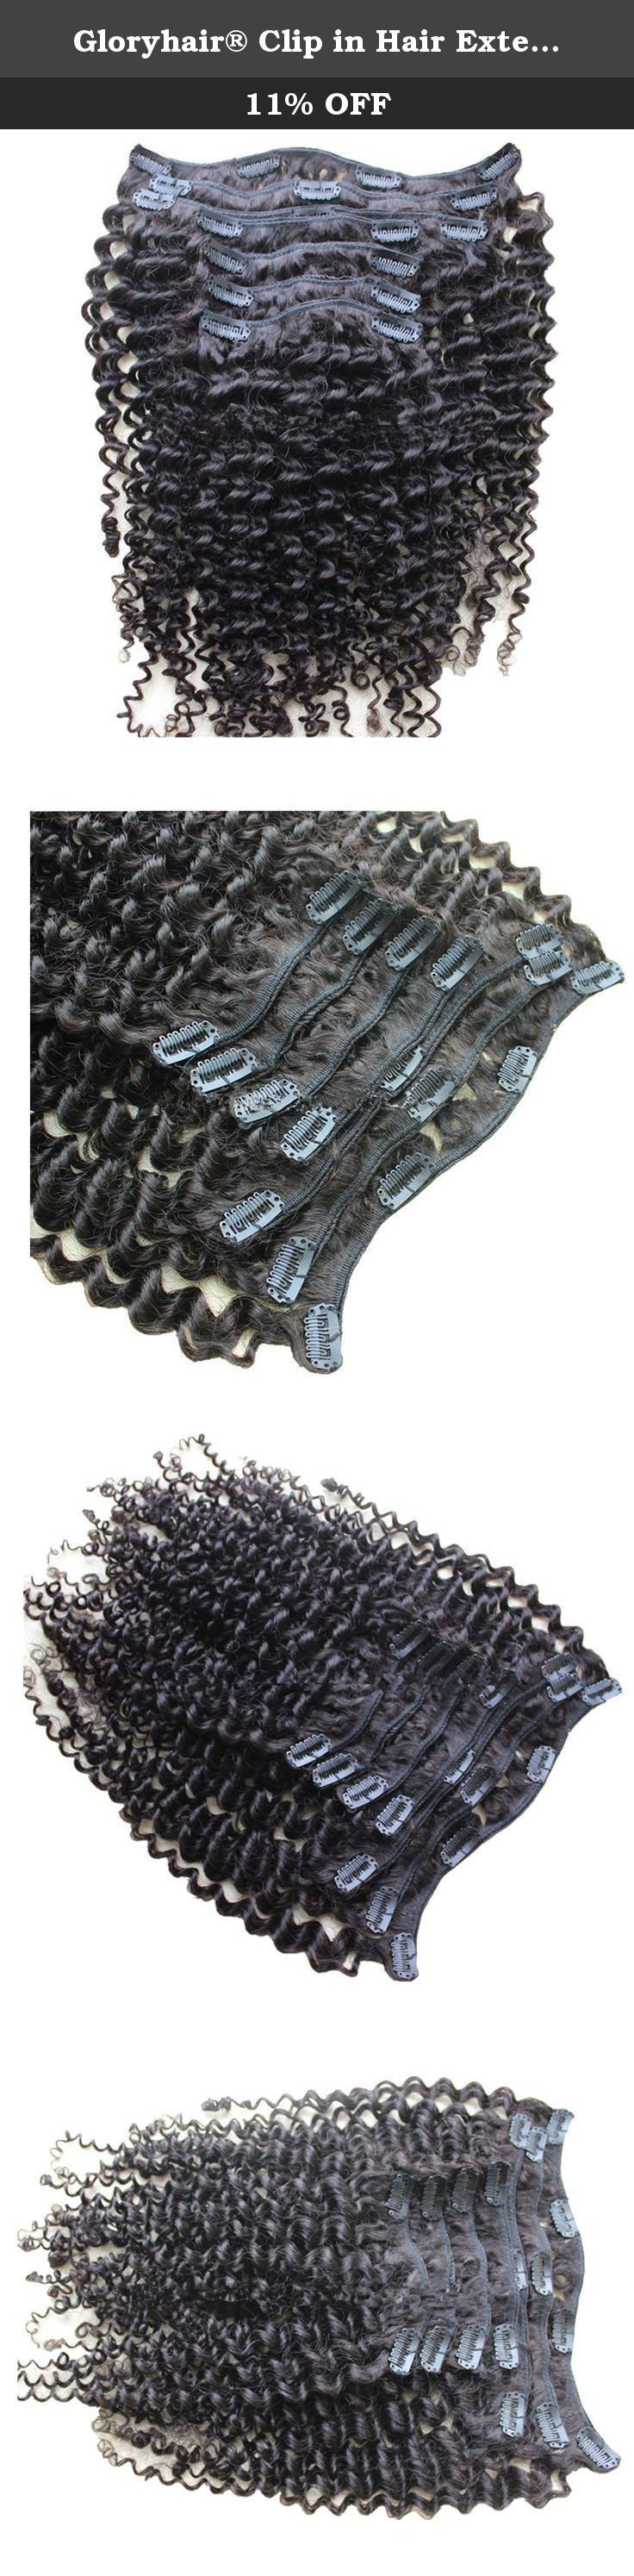 Gloryhair® Clip in Hair Extensions Kinky Curl 100% Brazilian Virgin Human Hair Weave Kinky Curly Clips on Hair Weaves for Black Women (6 Inches, #1). All of Safari Human Hair is UNPROCESSED 100% Brazilian Virgin Hair without any Synthetic or Animal Hair, It is Natural Movement of Premium Quality Virgin Human Hair. Any request for length, color, texture, density,pls contact us. 1. The most popular hair extension product all over the world! 2. Clips are already attached and the piece is…